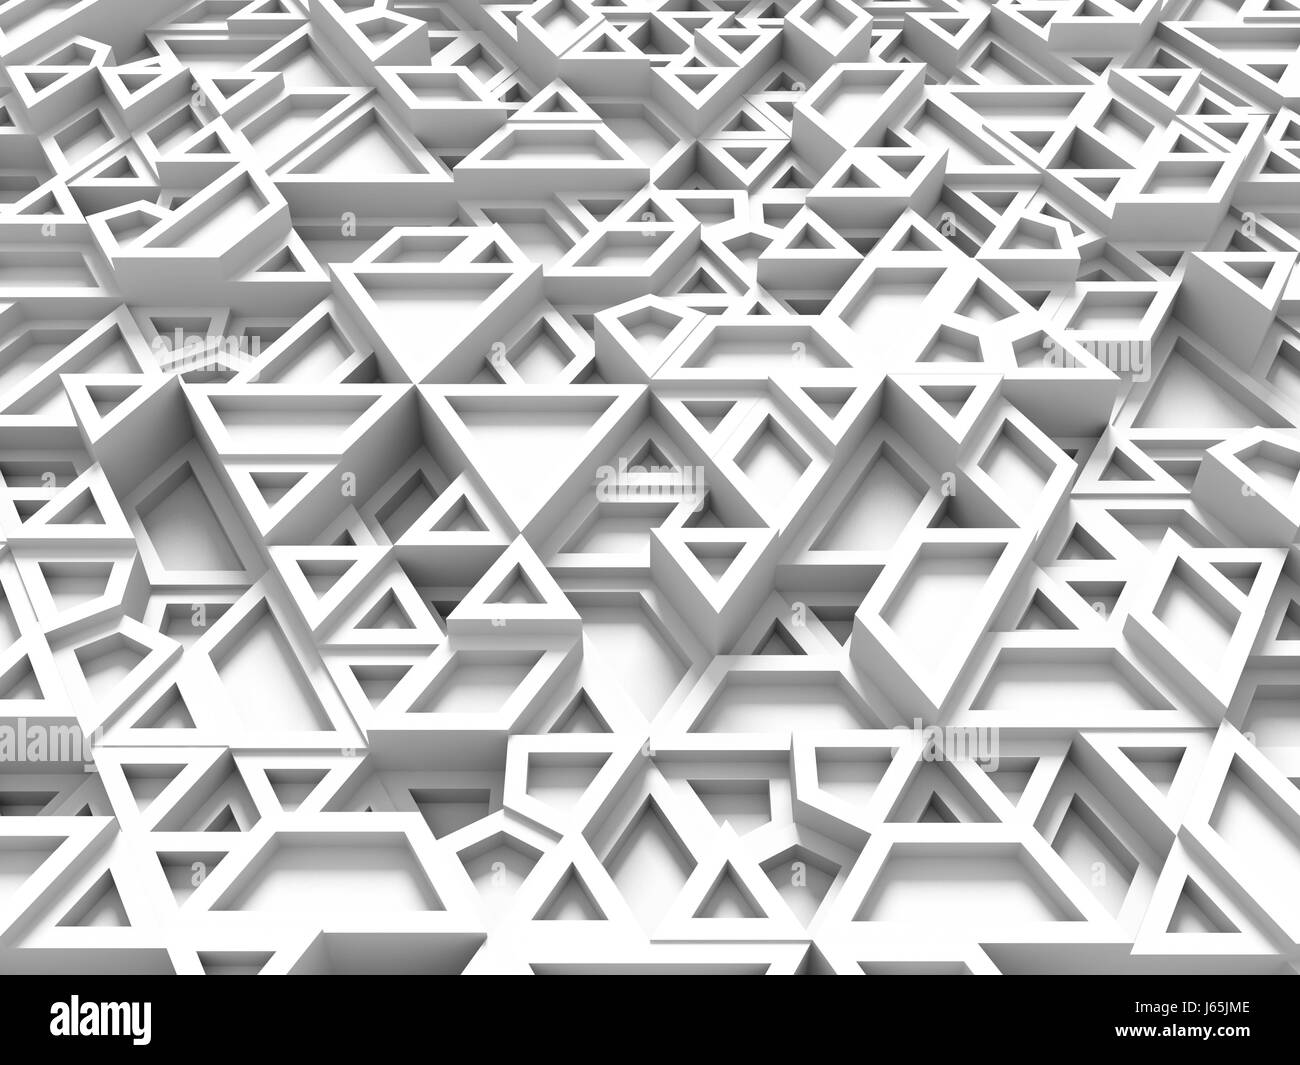 equilateral triangles - white abstract background with shadows - 3d rendering - Stock Image